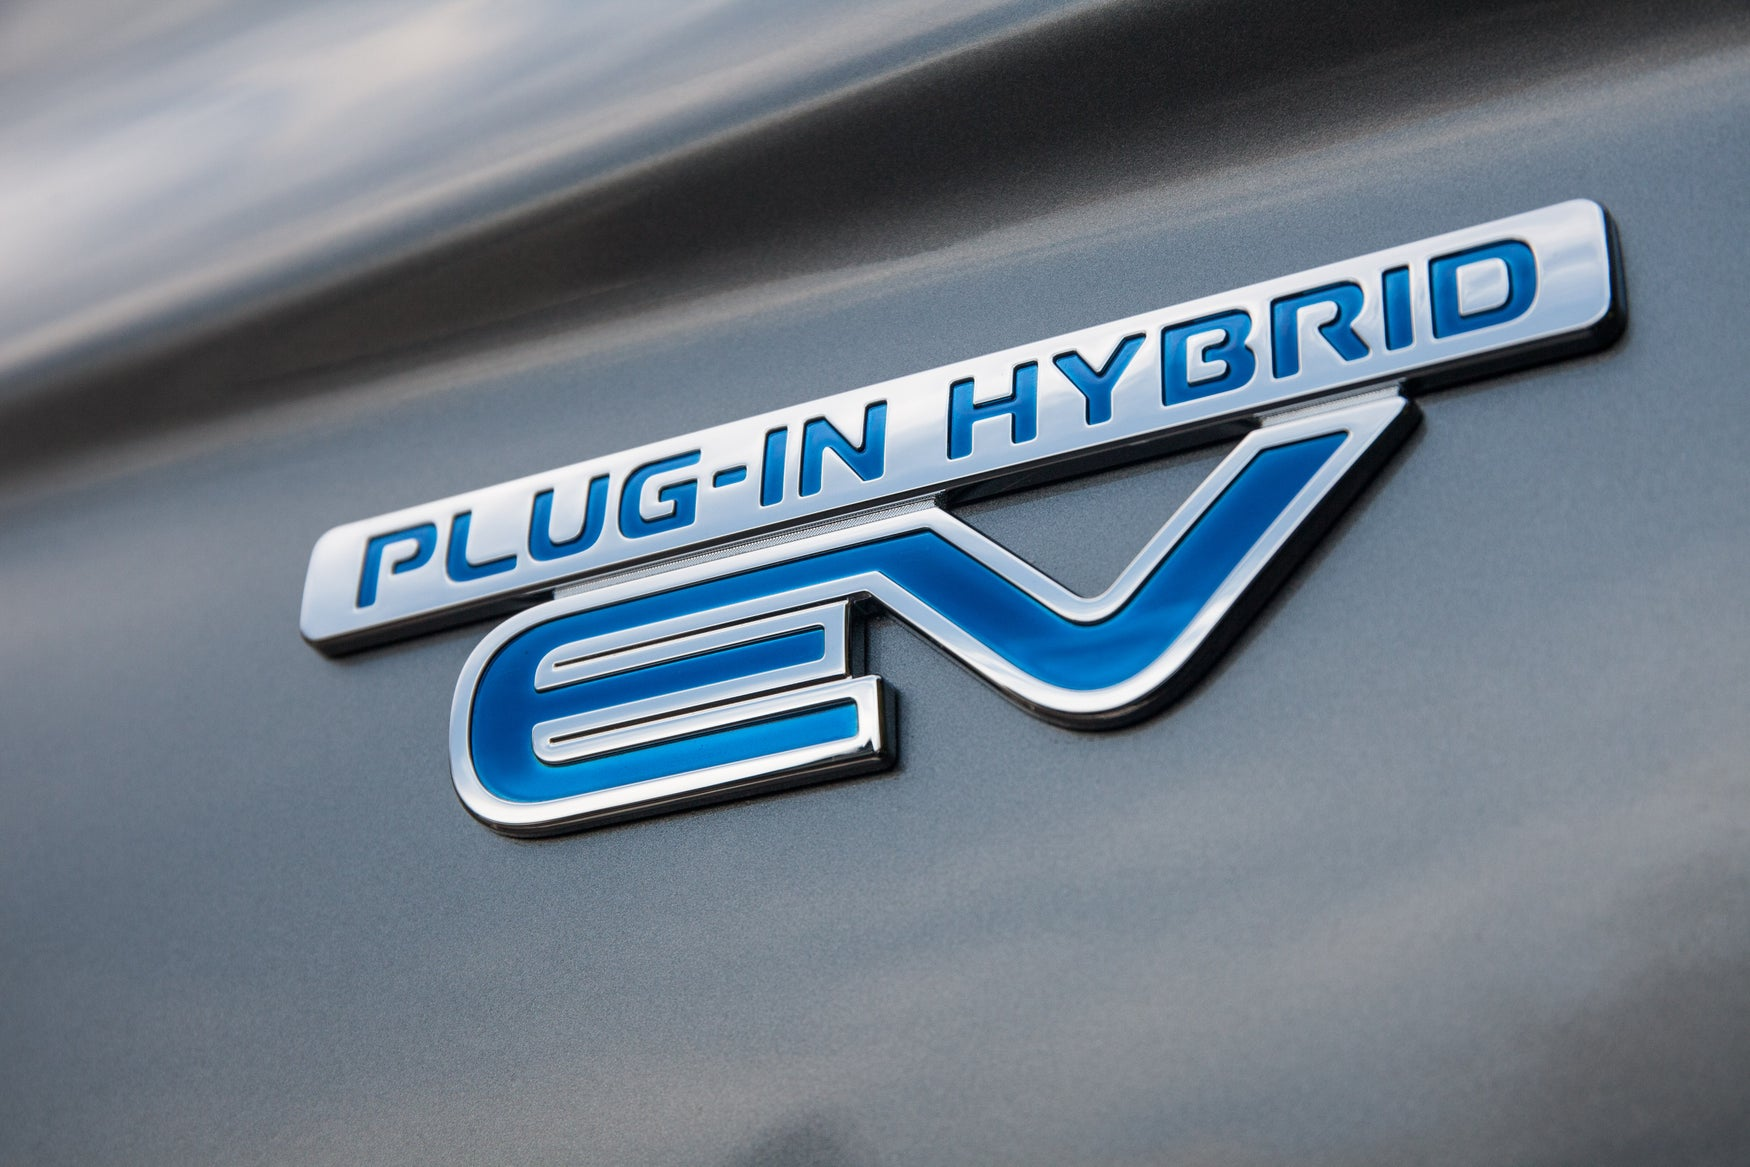 PHEV badge on Outlander PHEV